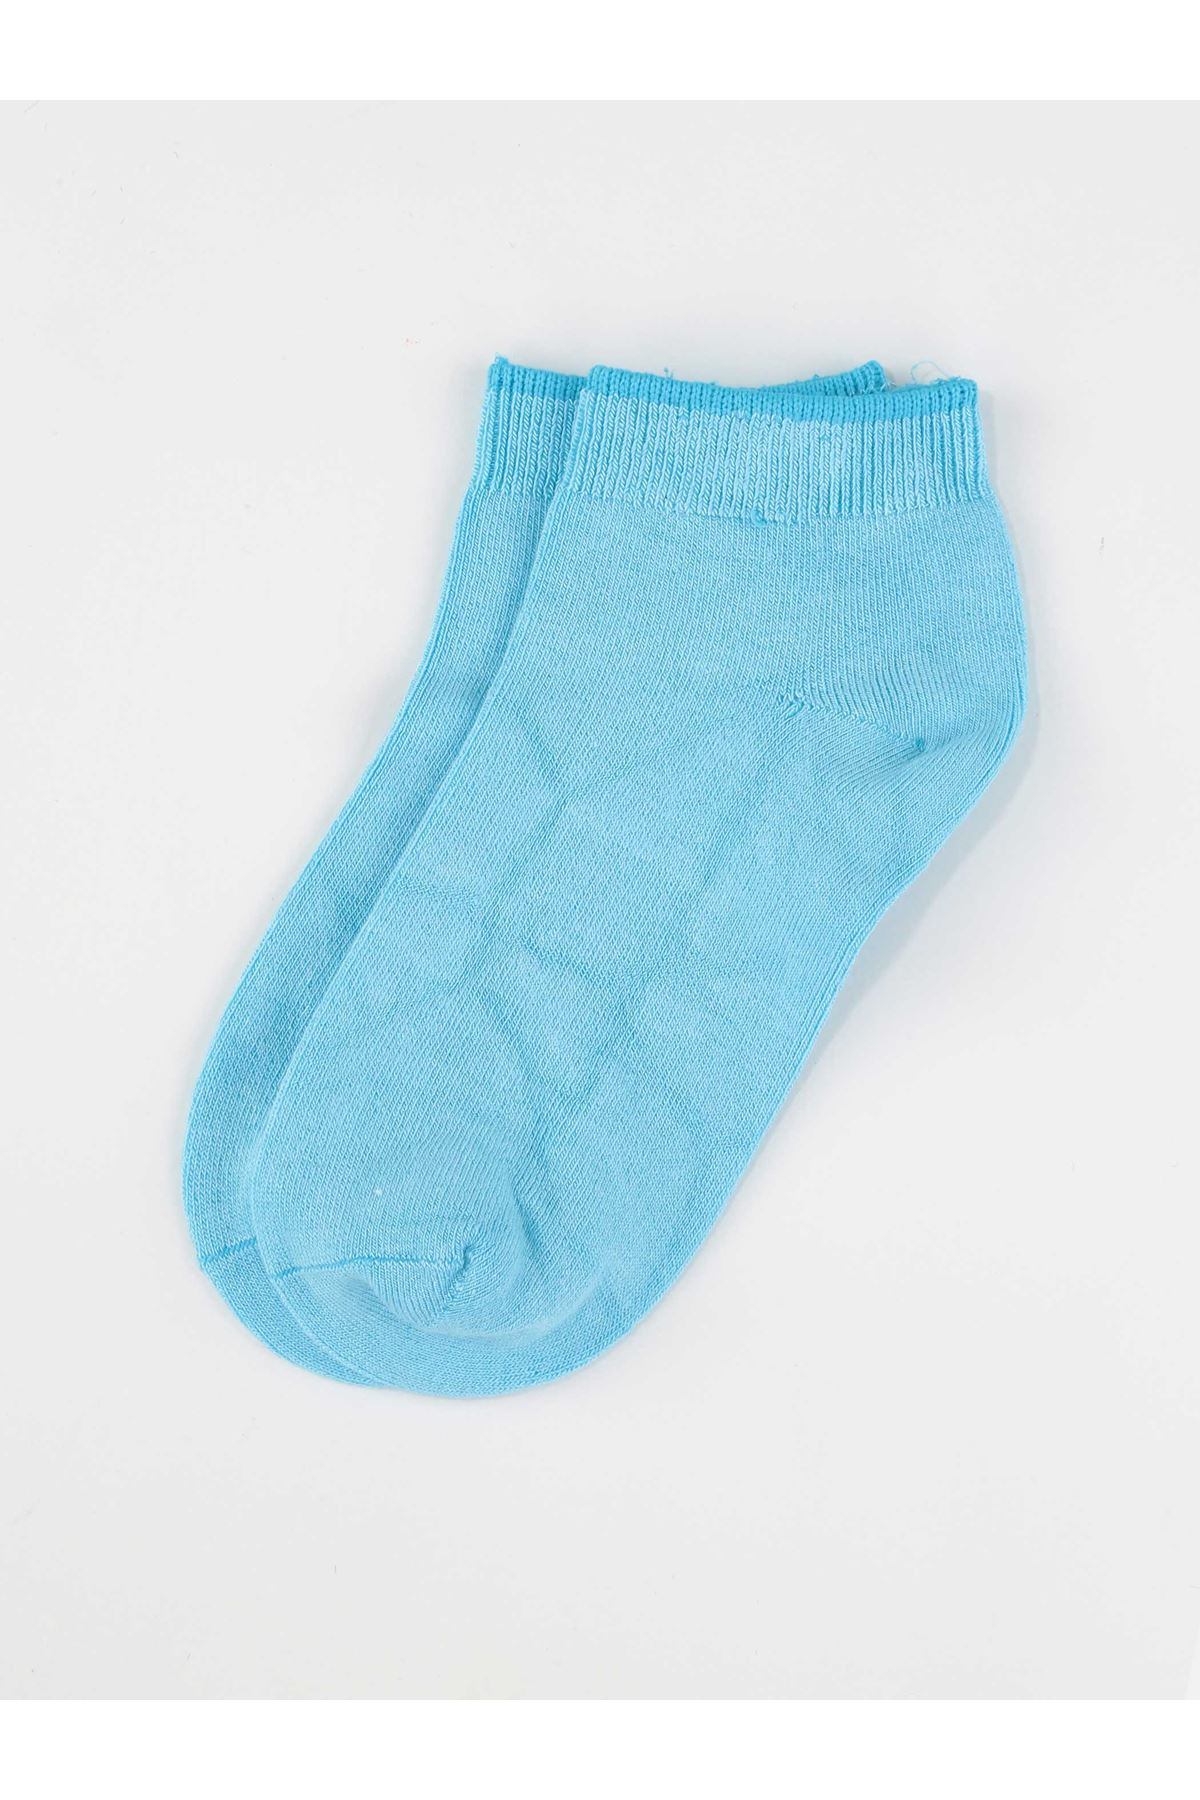 Blue Bamboo Girl's Booties Socks